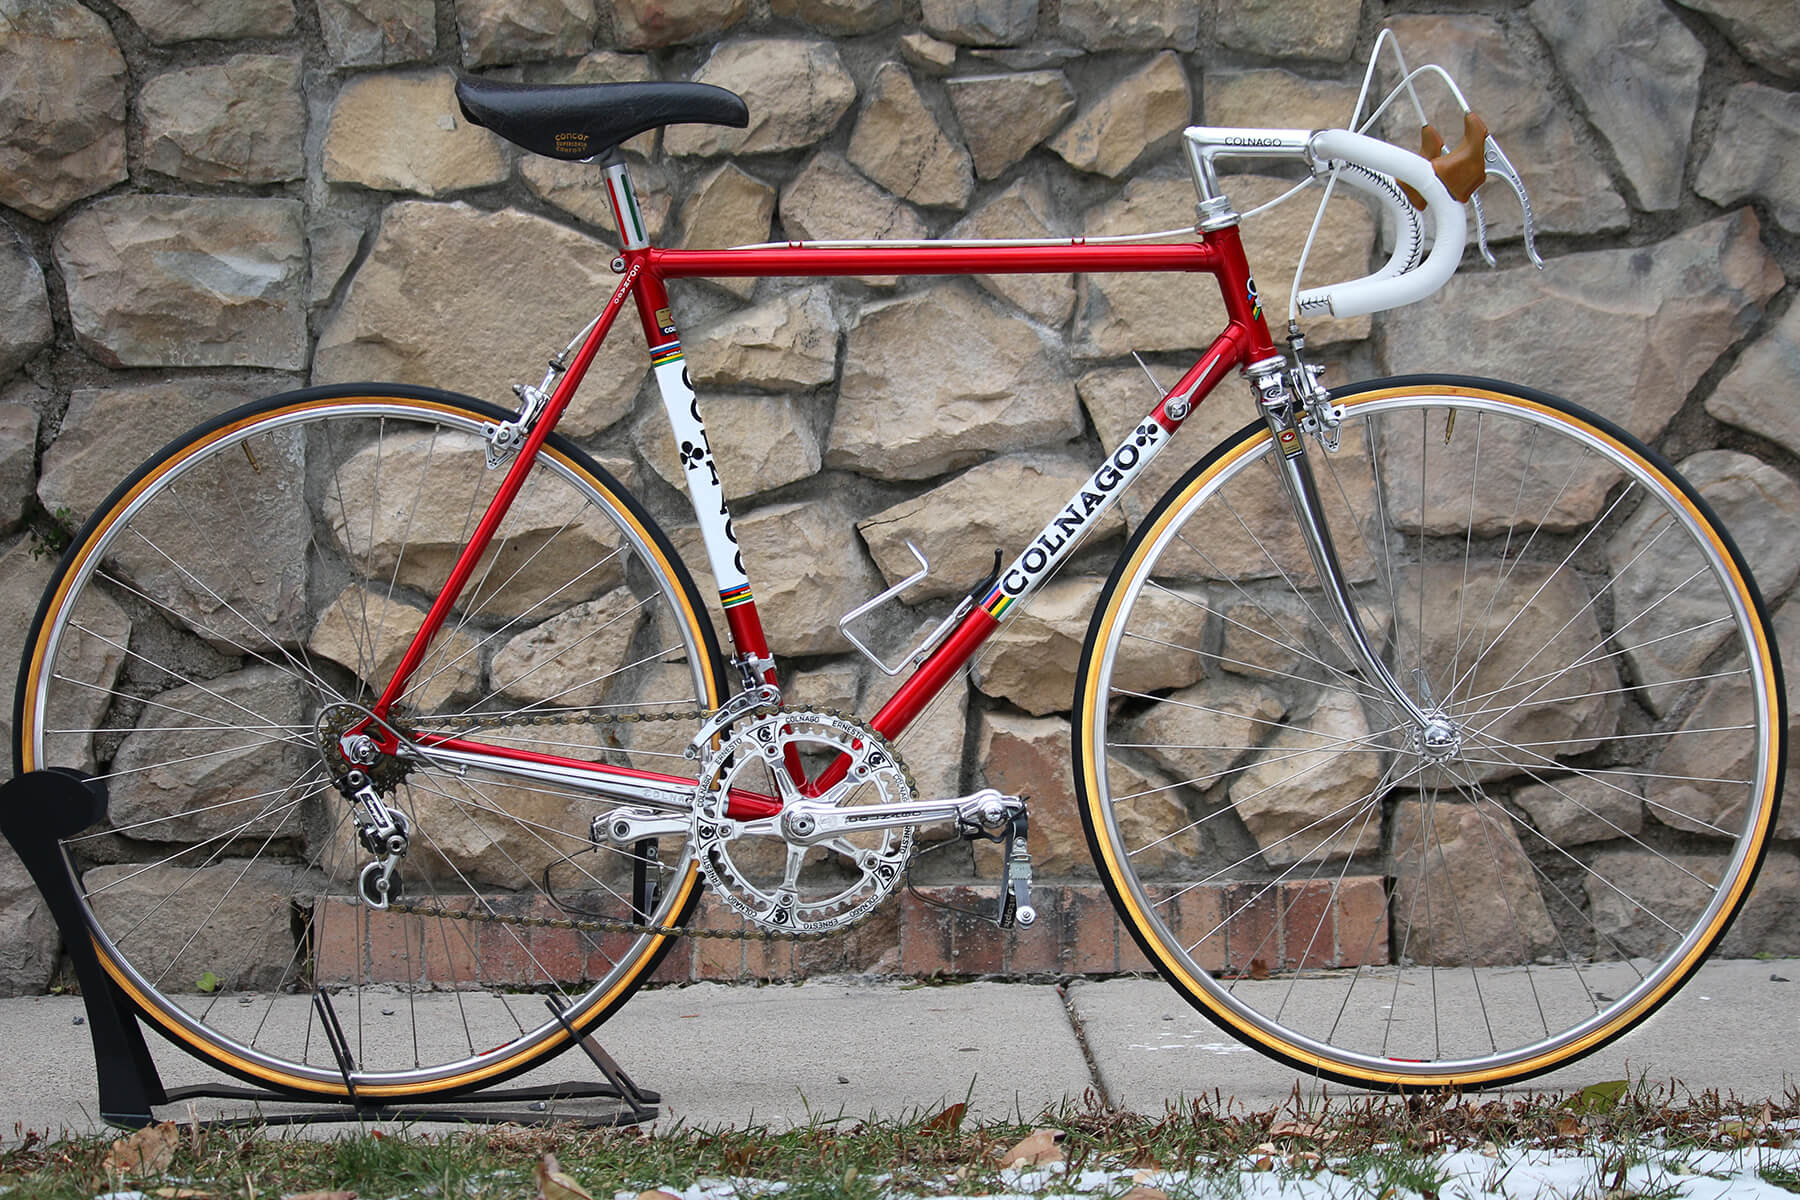 Vintage Colnago Italian Road Bike - Contender Bicycles